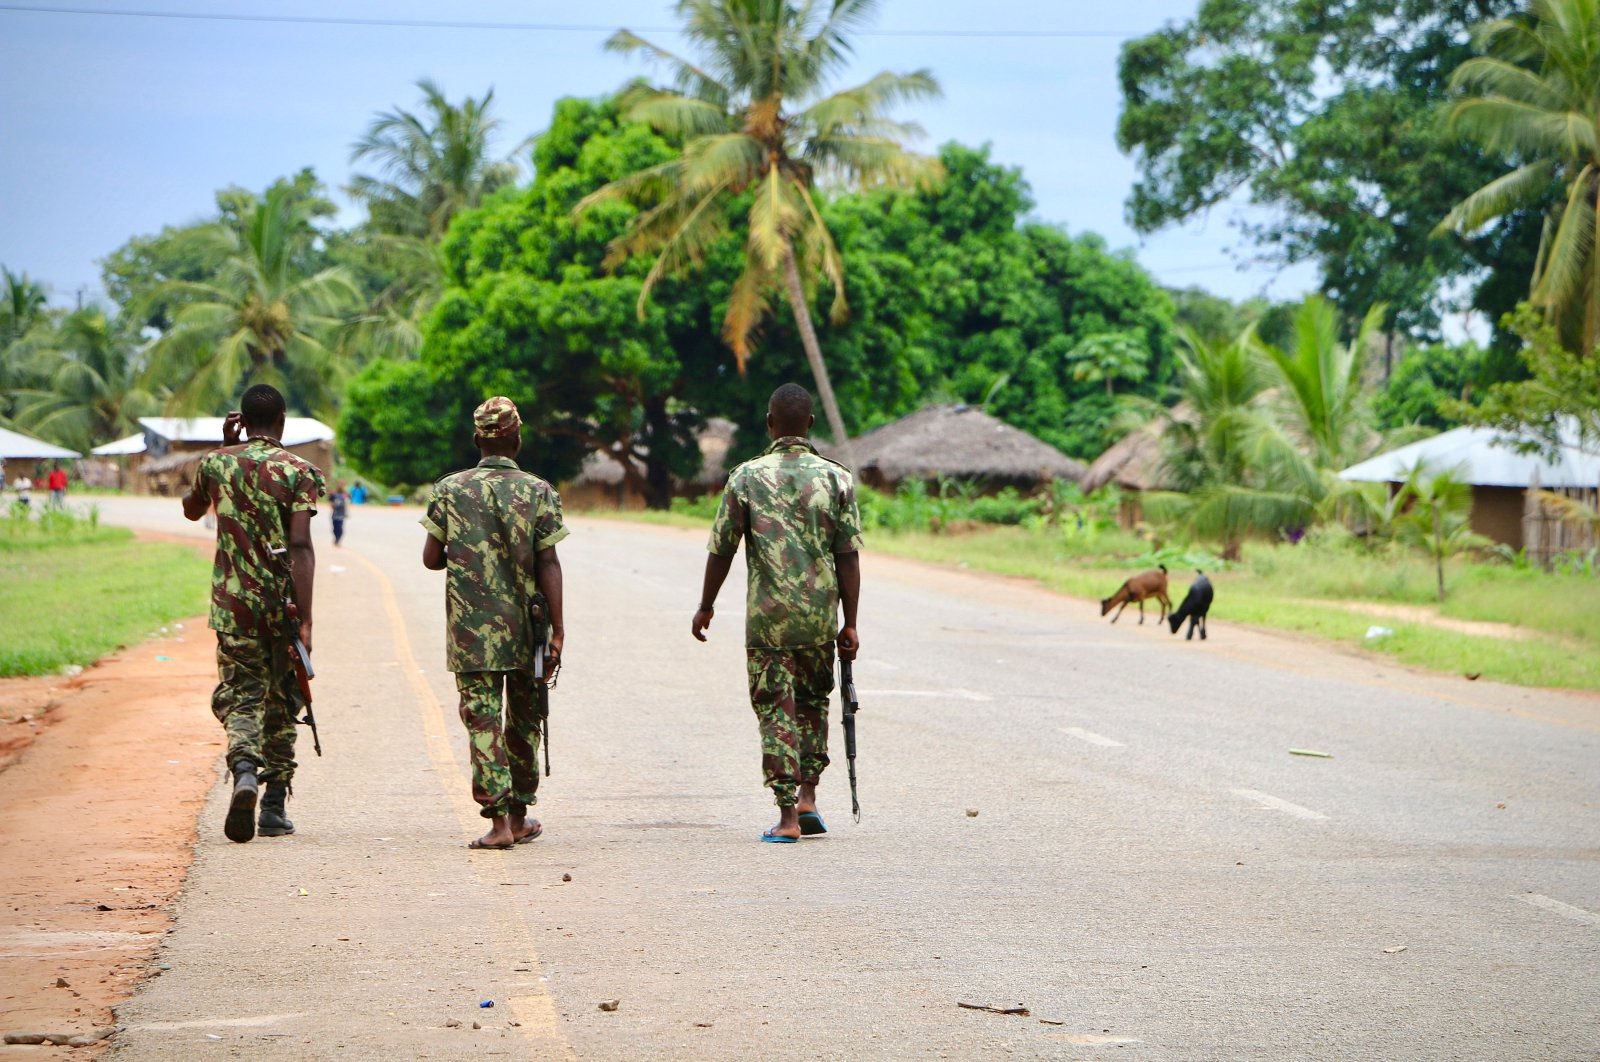 Soldiers from the Mozambican army patrol the streets in Mocimboa da Praia, Mozambique, March 7, 2018. (AFP Photo)